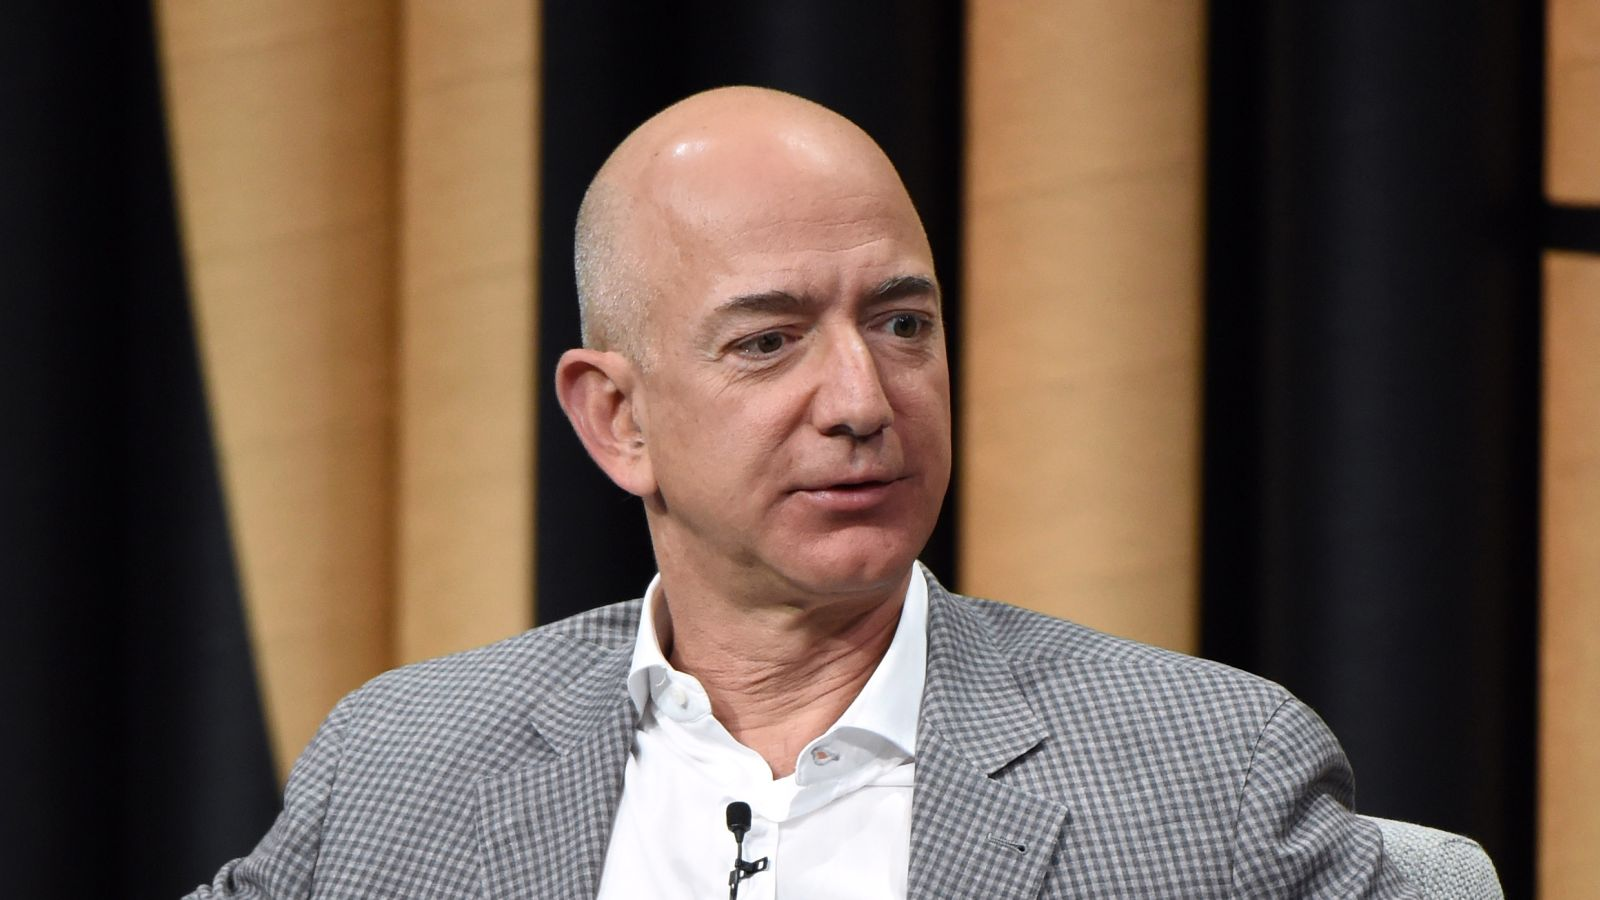 Jeff Bezos Tables Latest Breakthrough Cost-Cutting Idea After Realizing It's Just Slaves https://t.co/mLhKcc0252 https://t.co/Zh25TI9NNZ